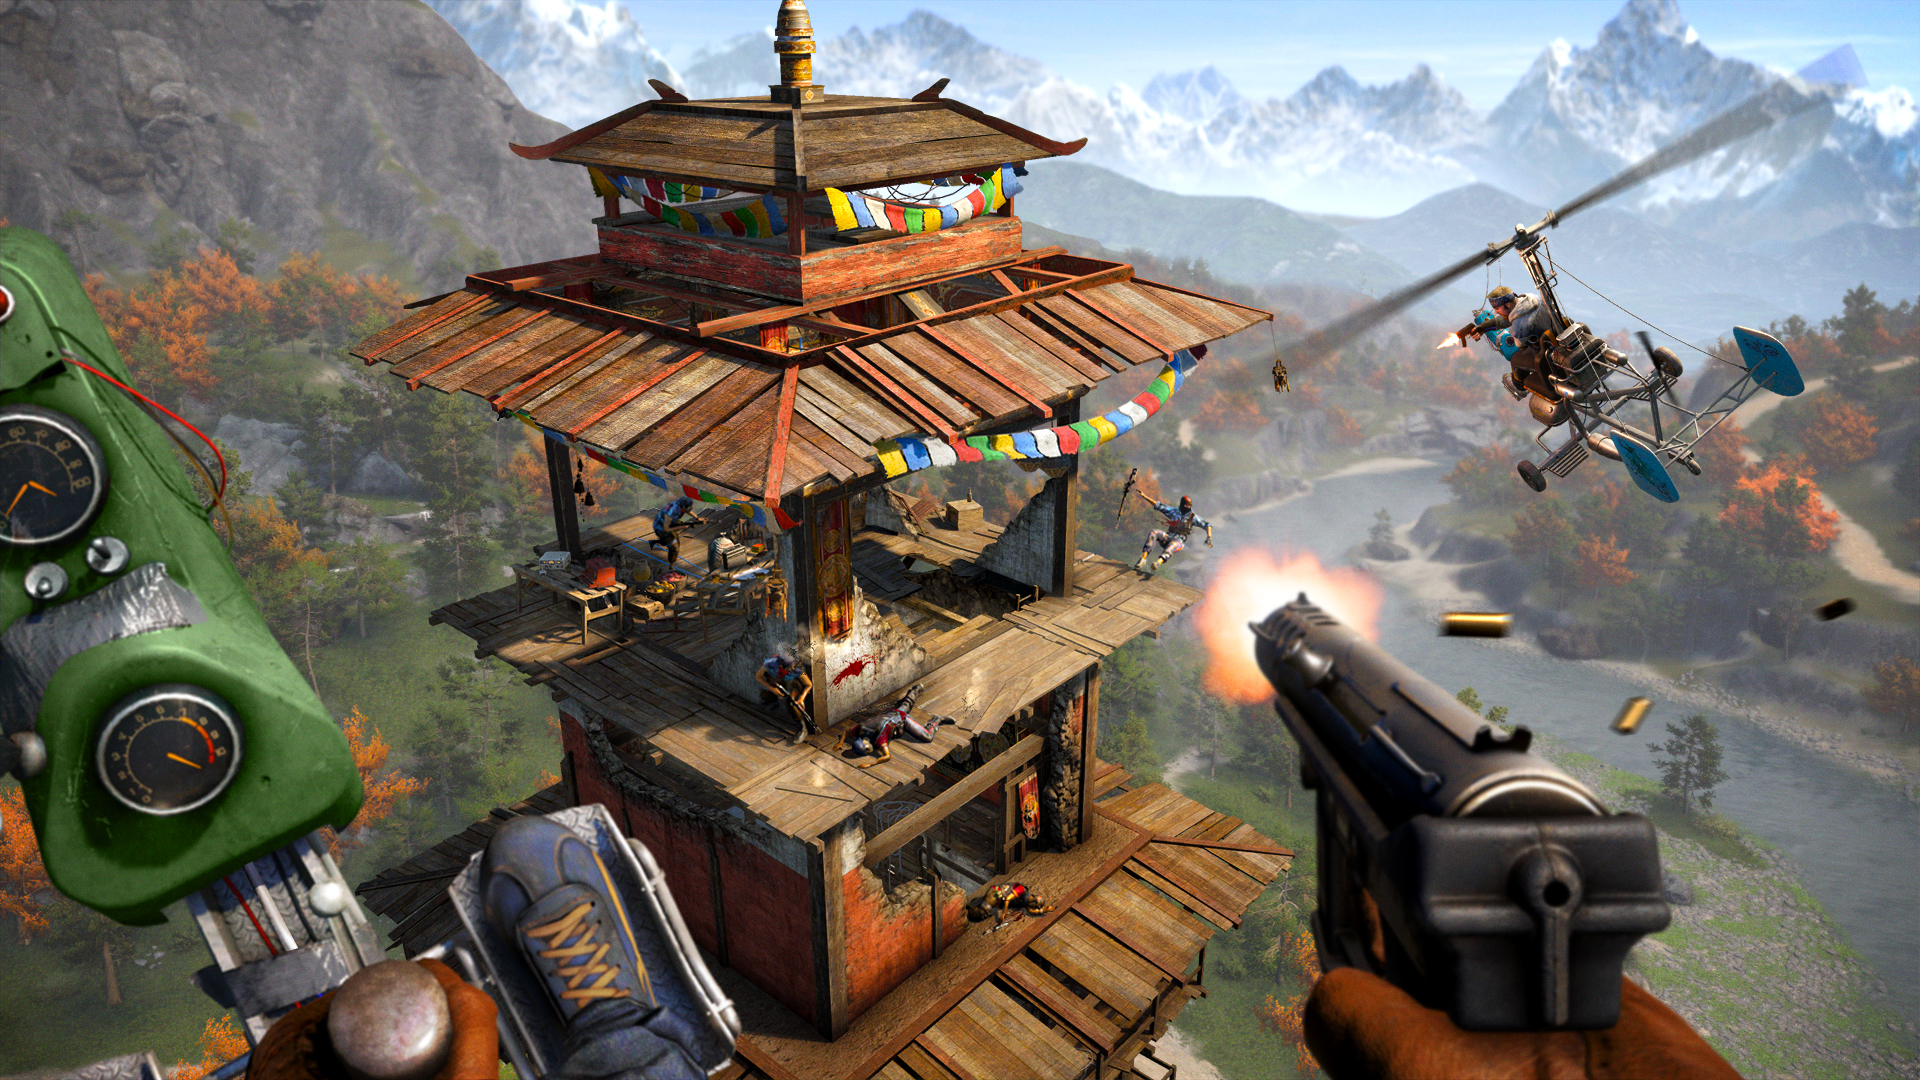 Download Far Cry 4 Escape From Durgesh Prison Full Pc Game